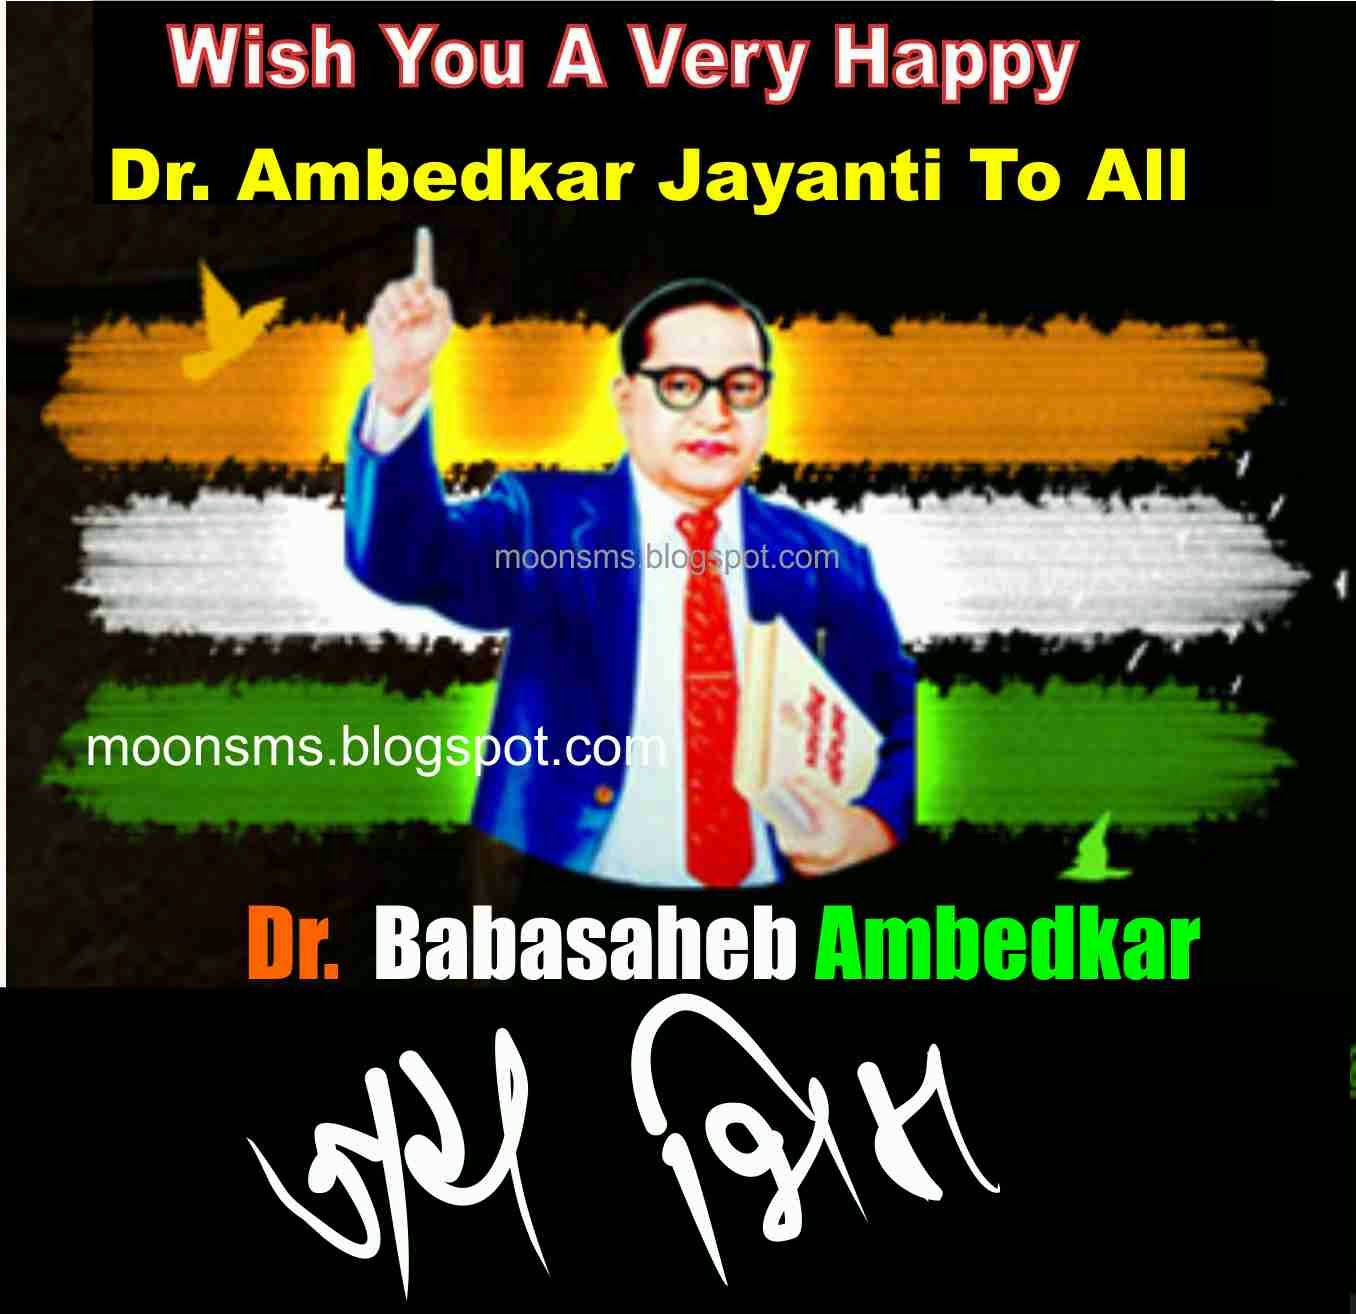 Dr.Babasaheb Ambedkar Jayanti images photos Hd wallpaper Greetings for Facebook whatsapp